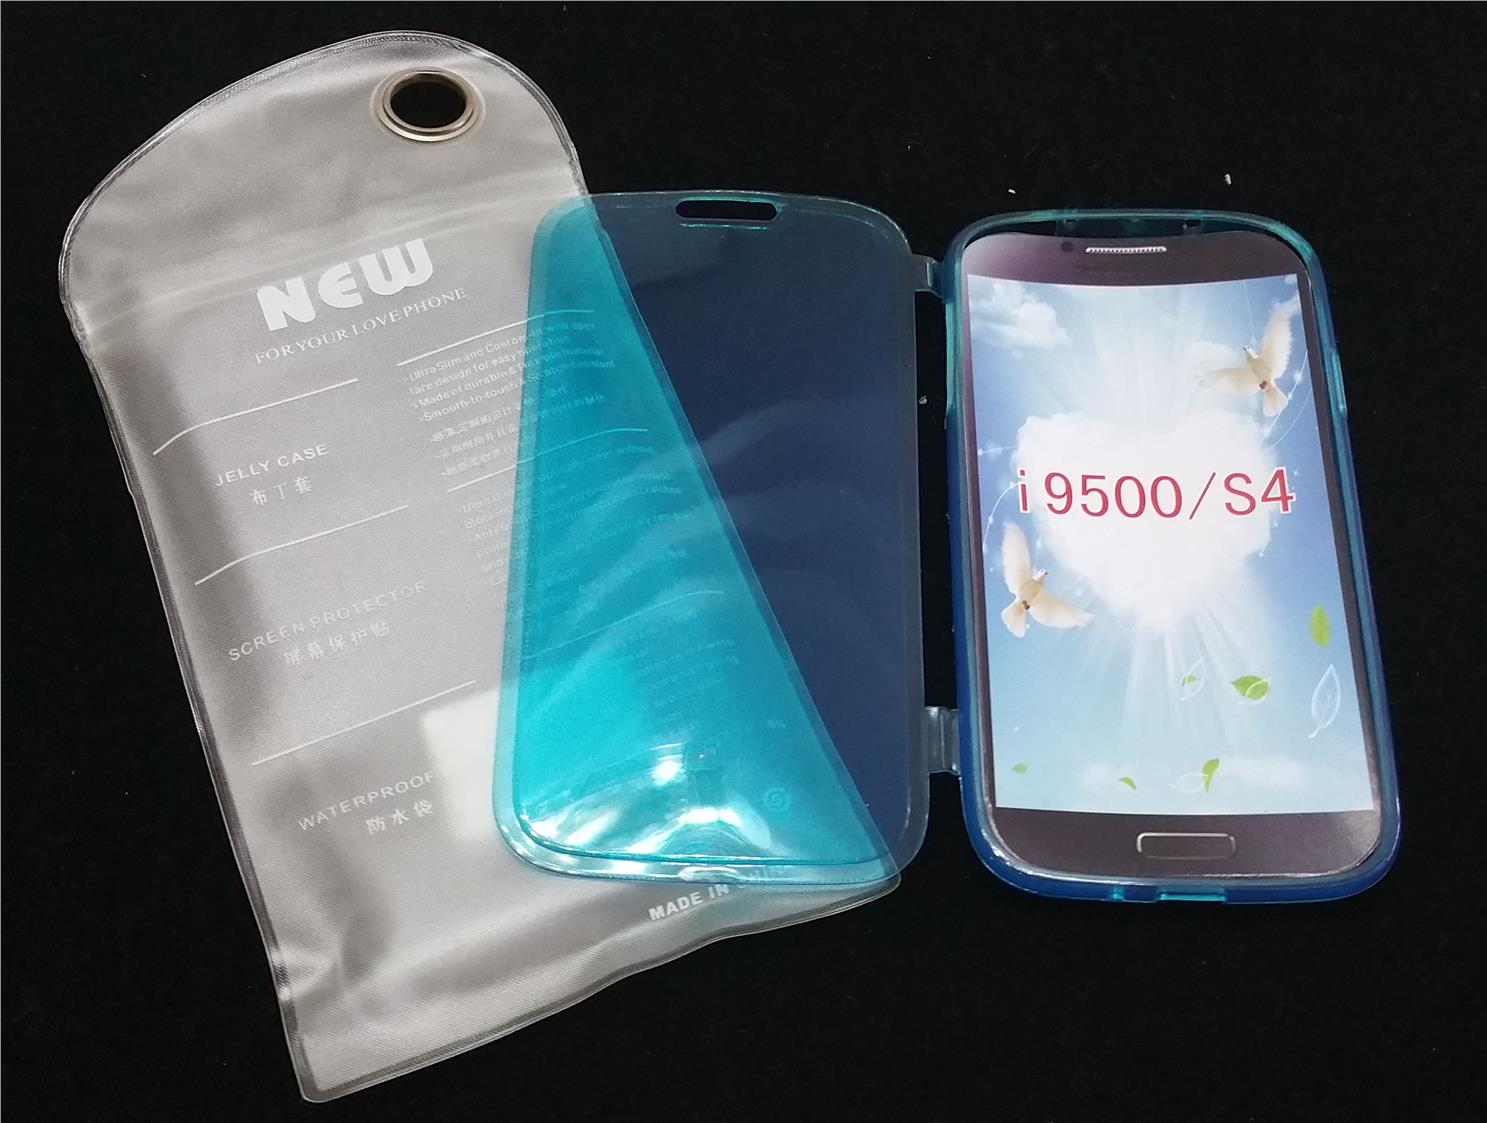 #S47 Samsung Galaxy S3 i9300 Flip Case Blue Water Proof Bag